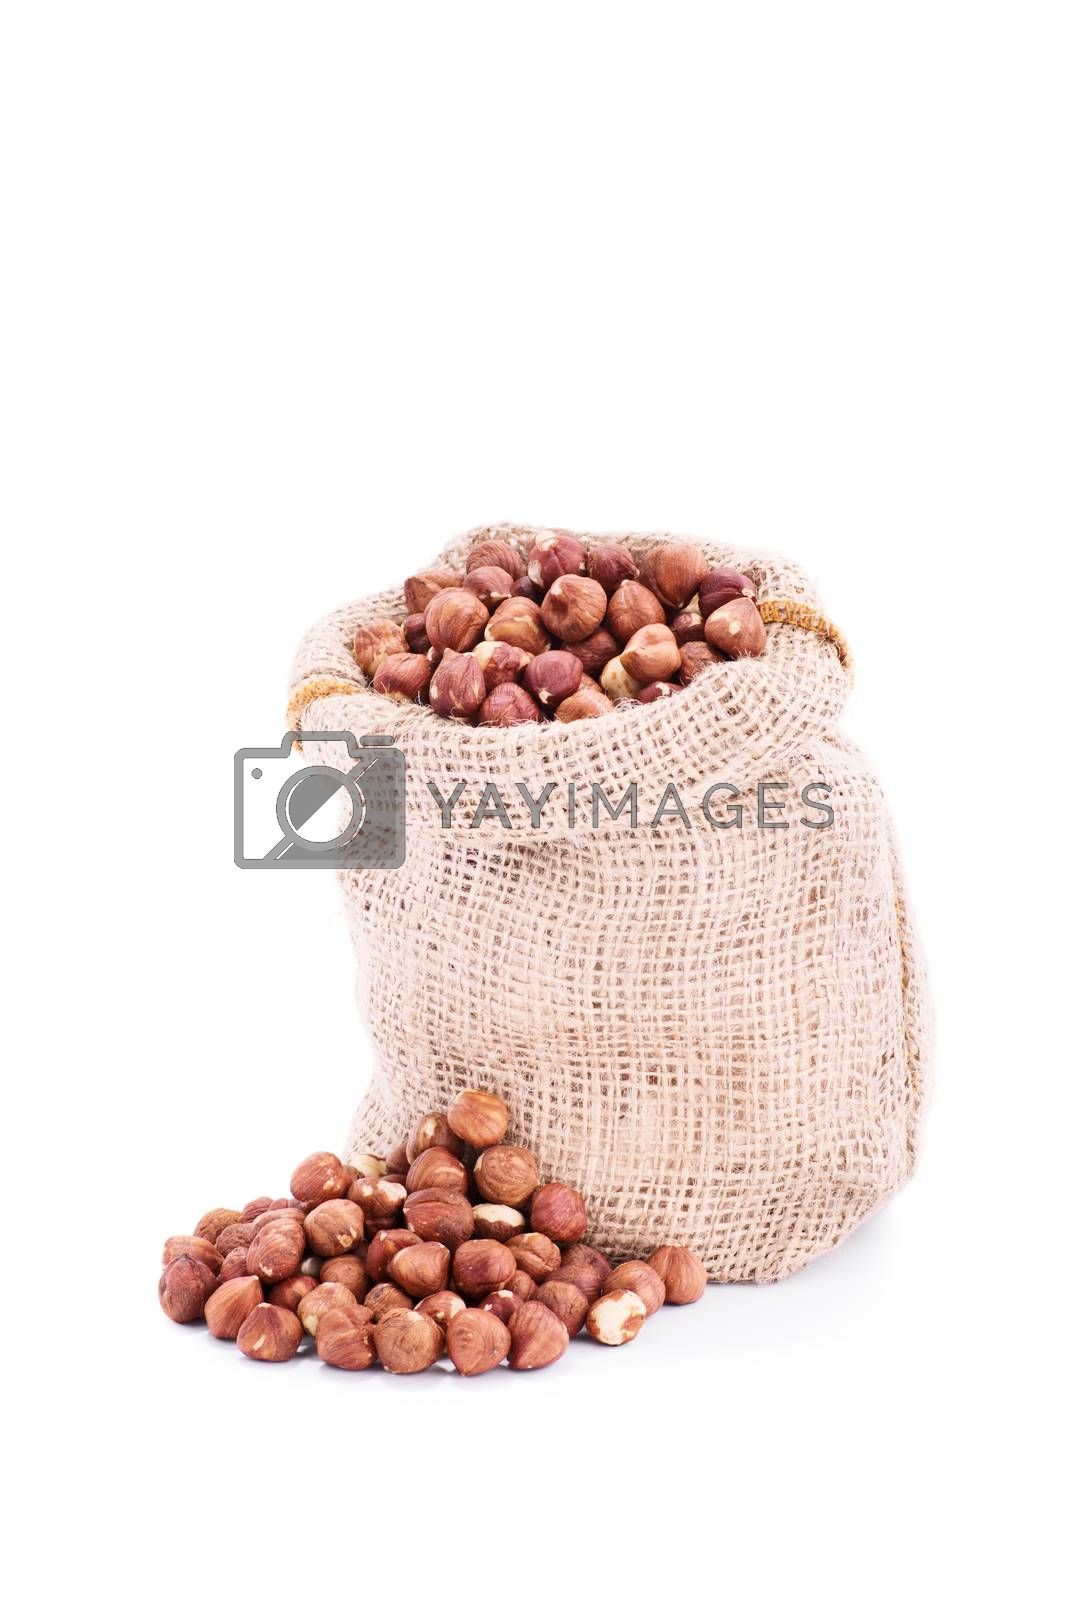 Small burlap sack of fresh hazelnuts, isolated on white background.